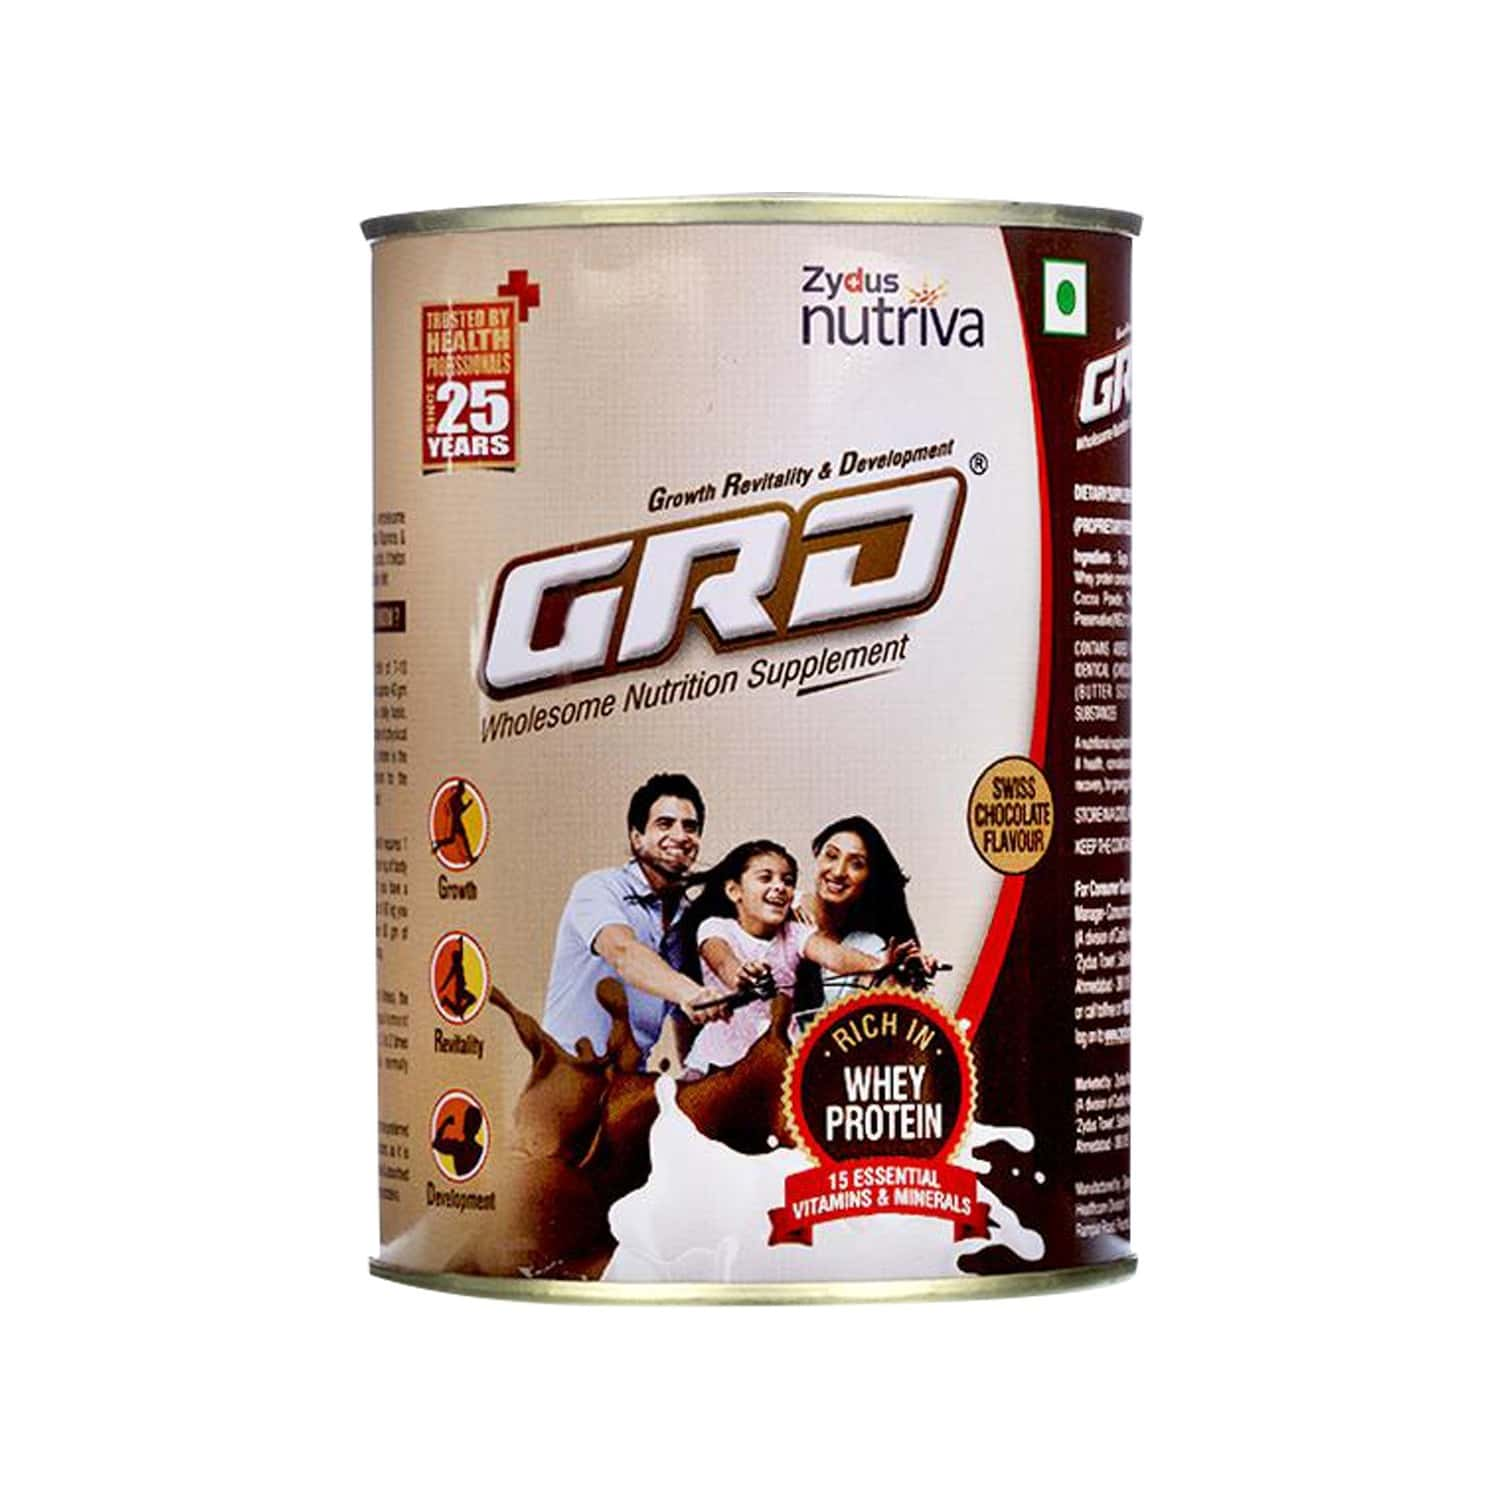 Grd Chocolate Whey Protein Tin Of 200 G